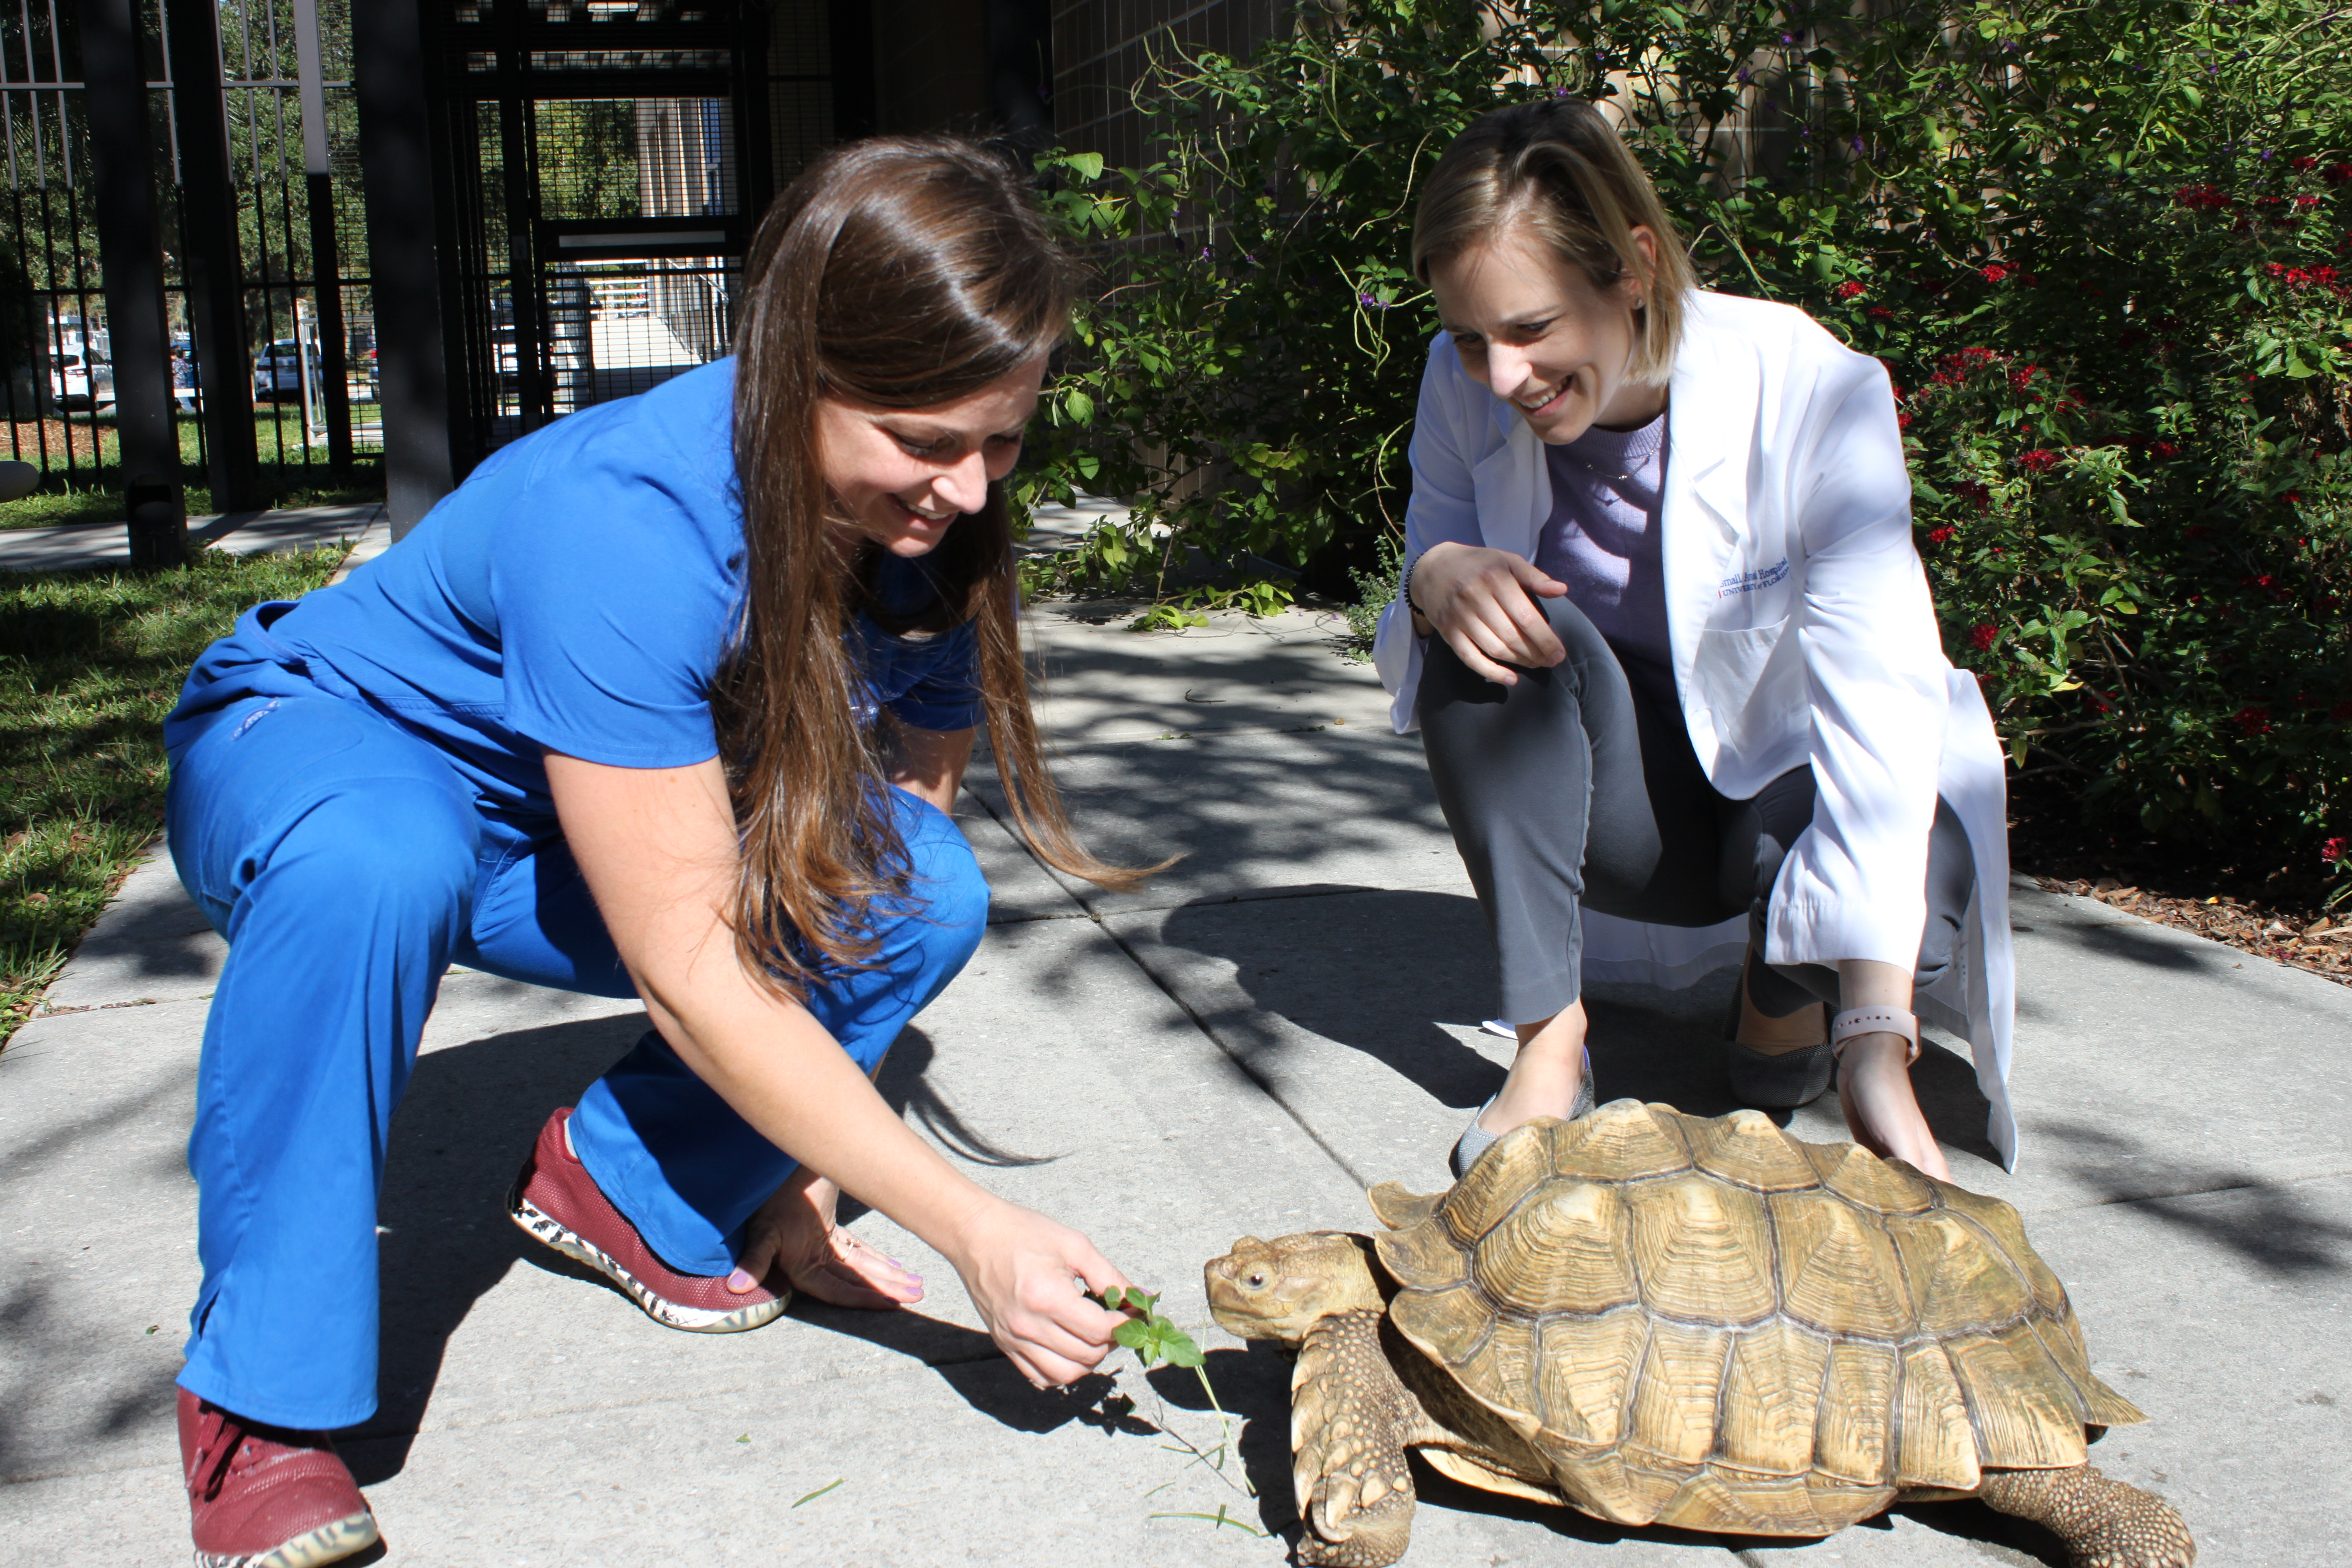 Veterinary technician Desiree Ambruso, left, and Dr. Amy Alexander, visit with this 40-pound sulcata tortoise outside of the UF College of Veterinary Medicine prior to her discharge to her new home.